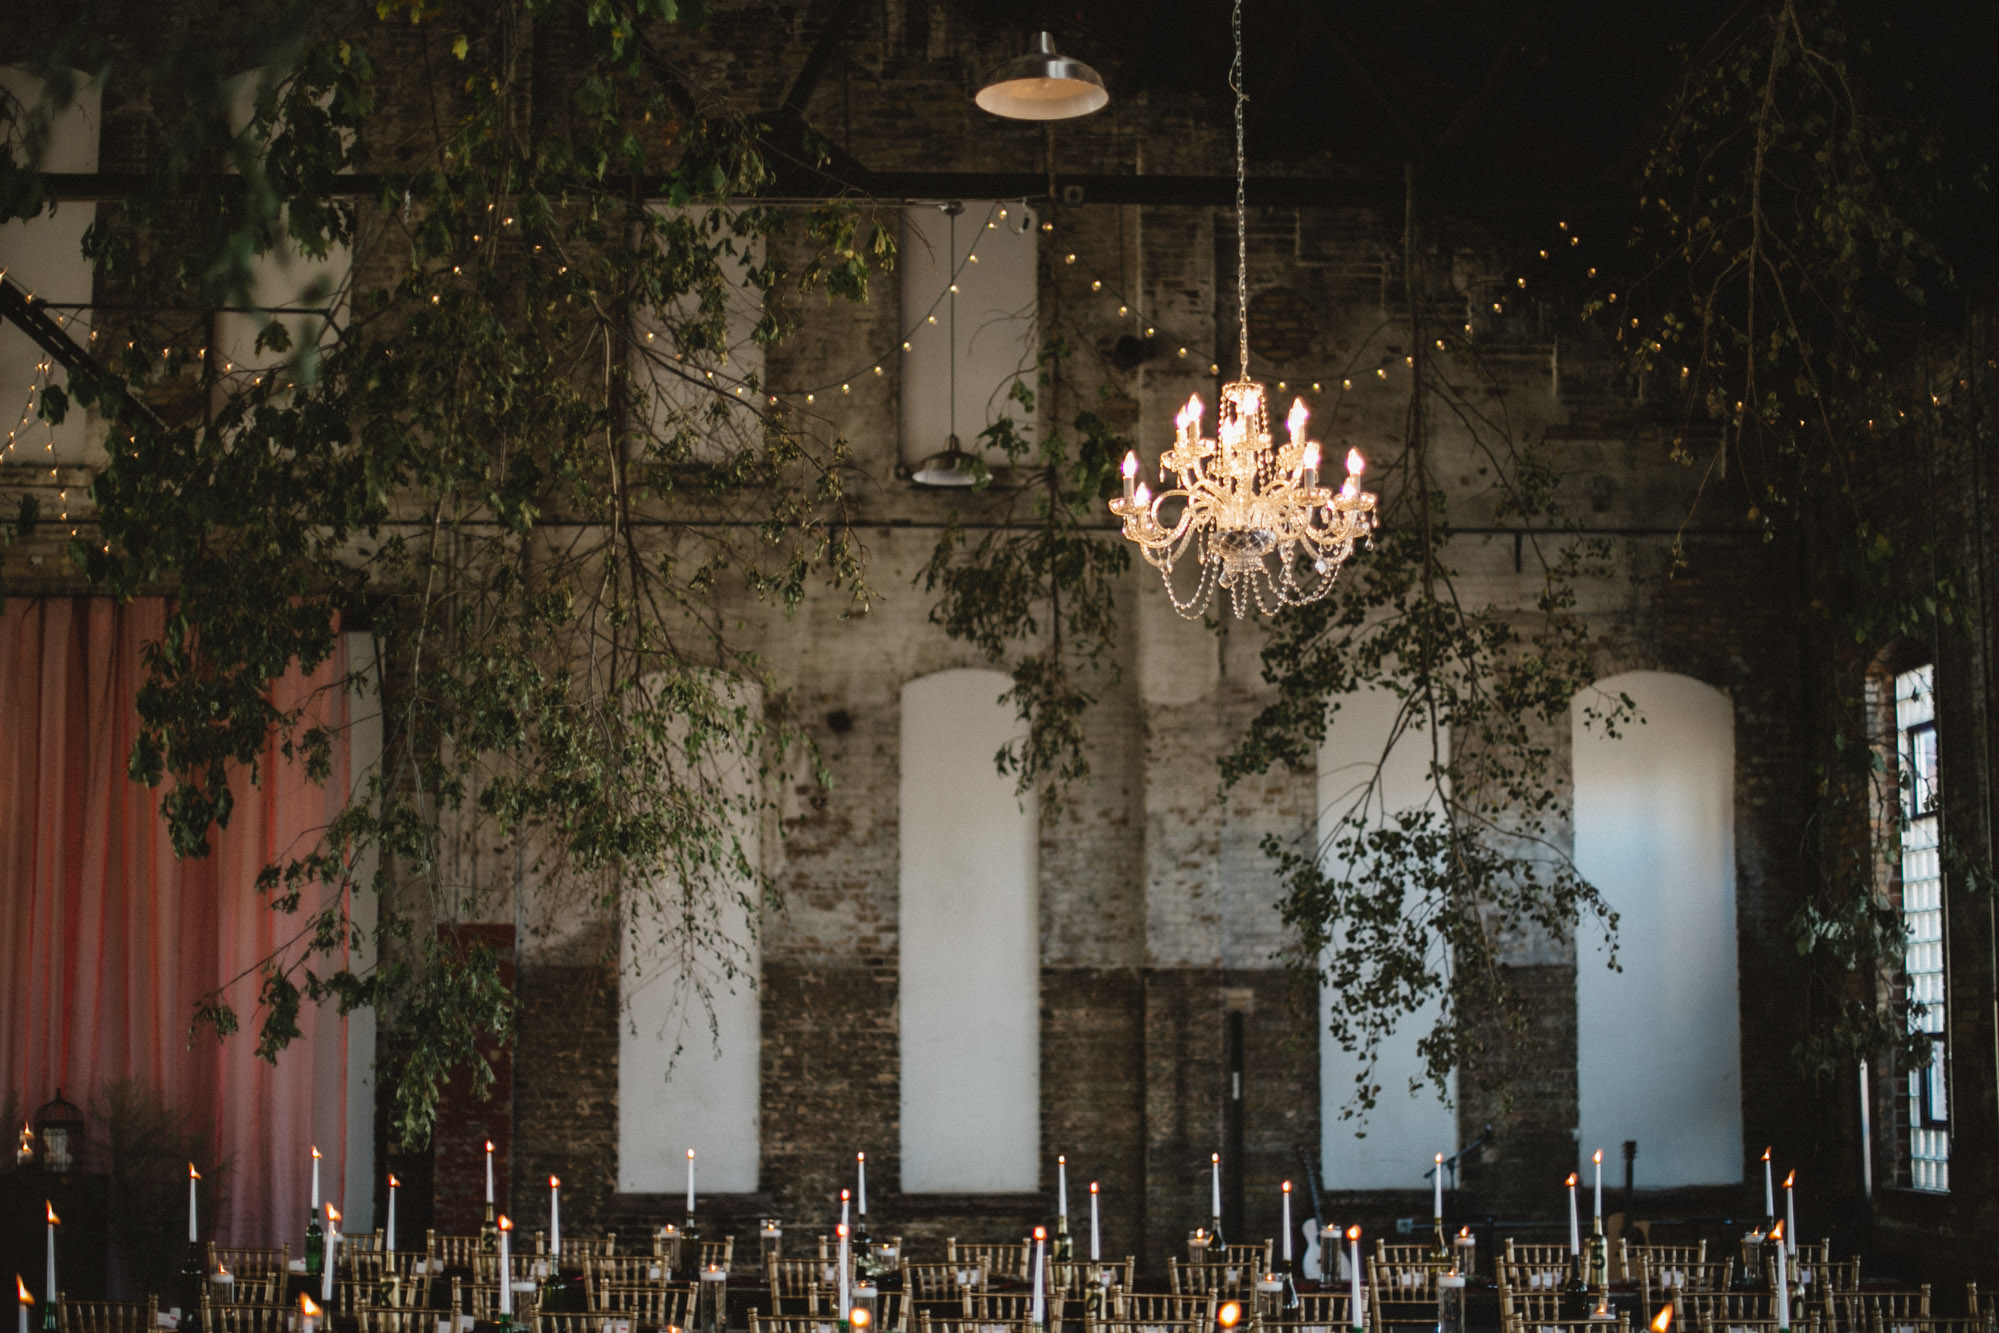 Romantic warehouse wedding at the NP Event Space, photography by Britt DeZeeuw